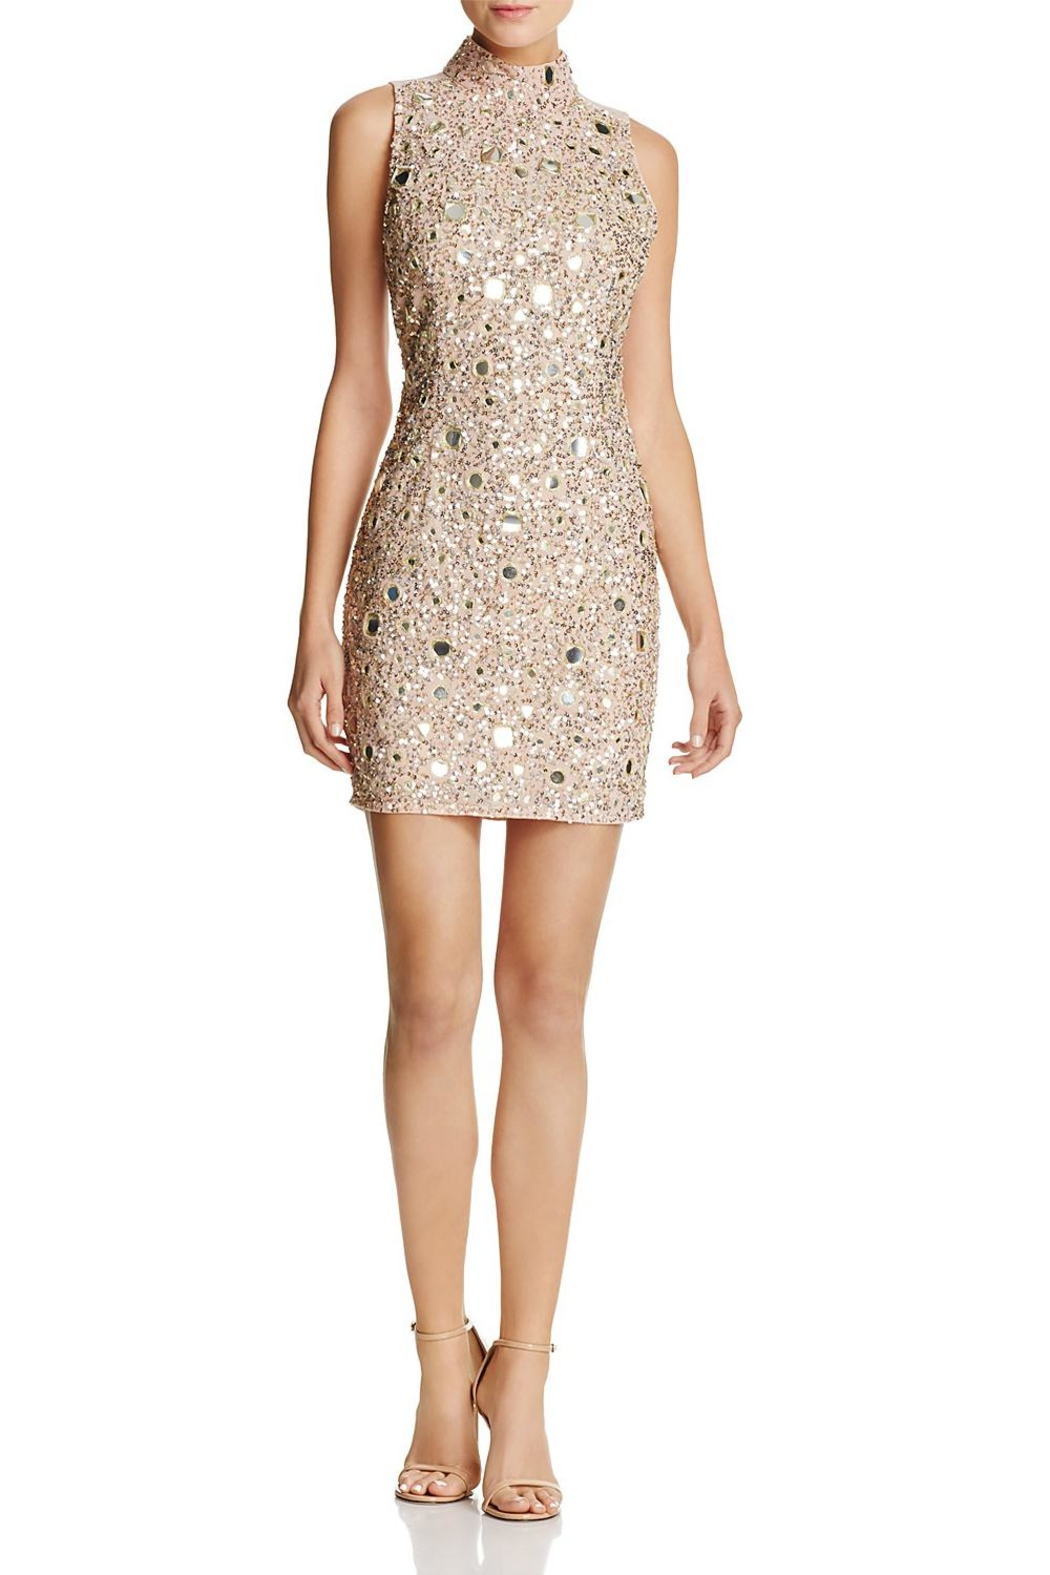 French Connection Sequined/mirrored Mini Dress - Main Image